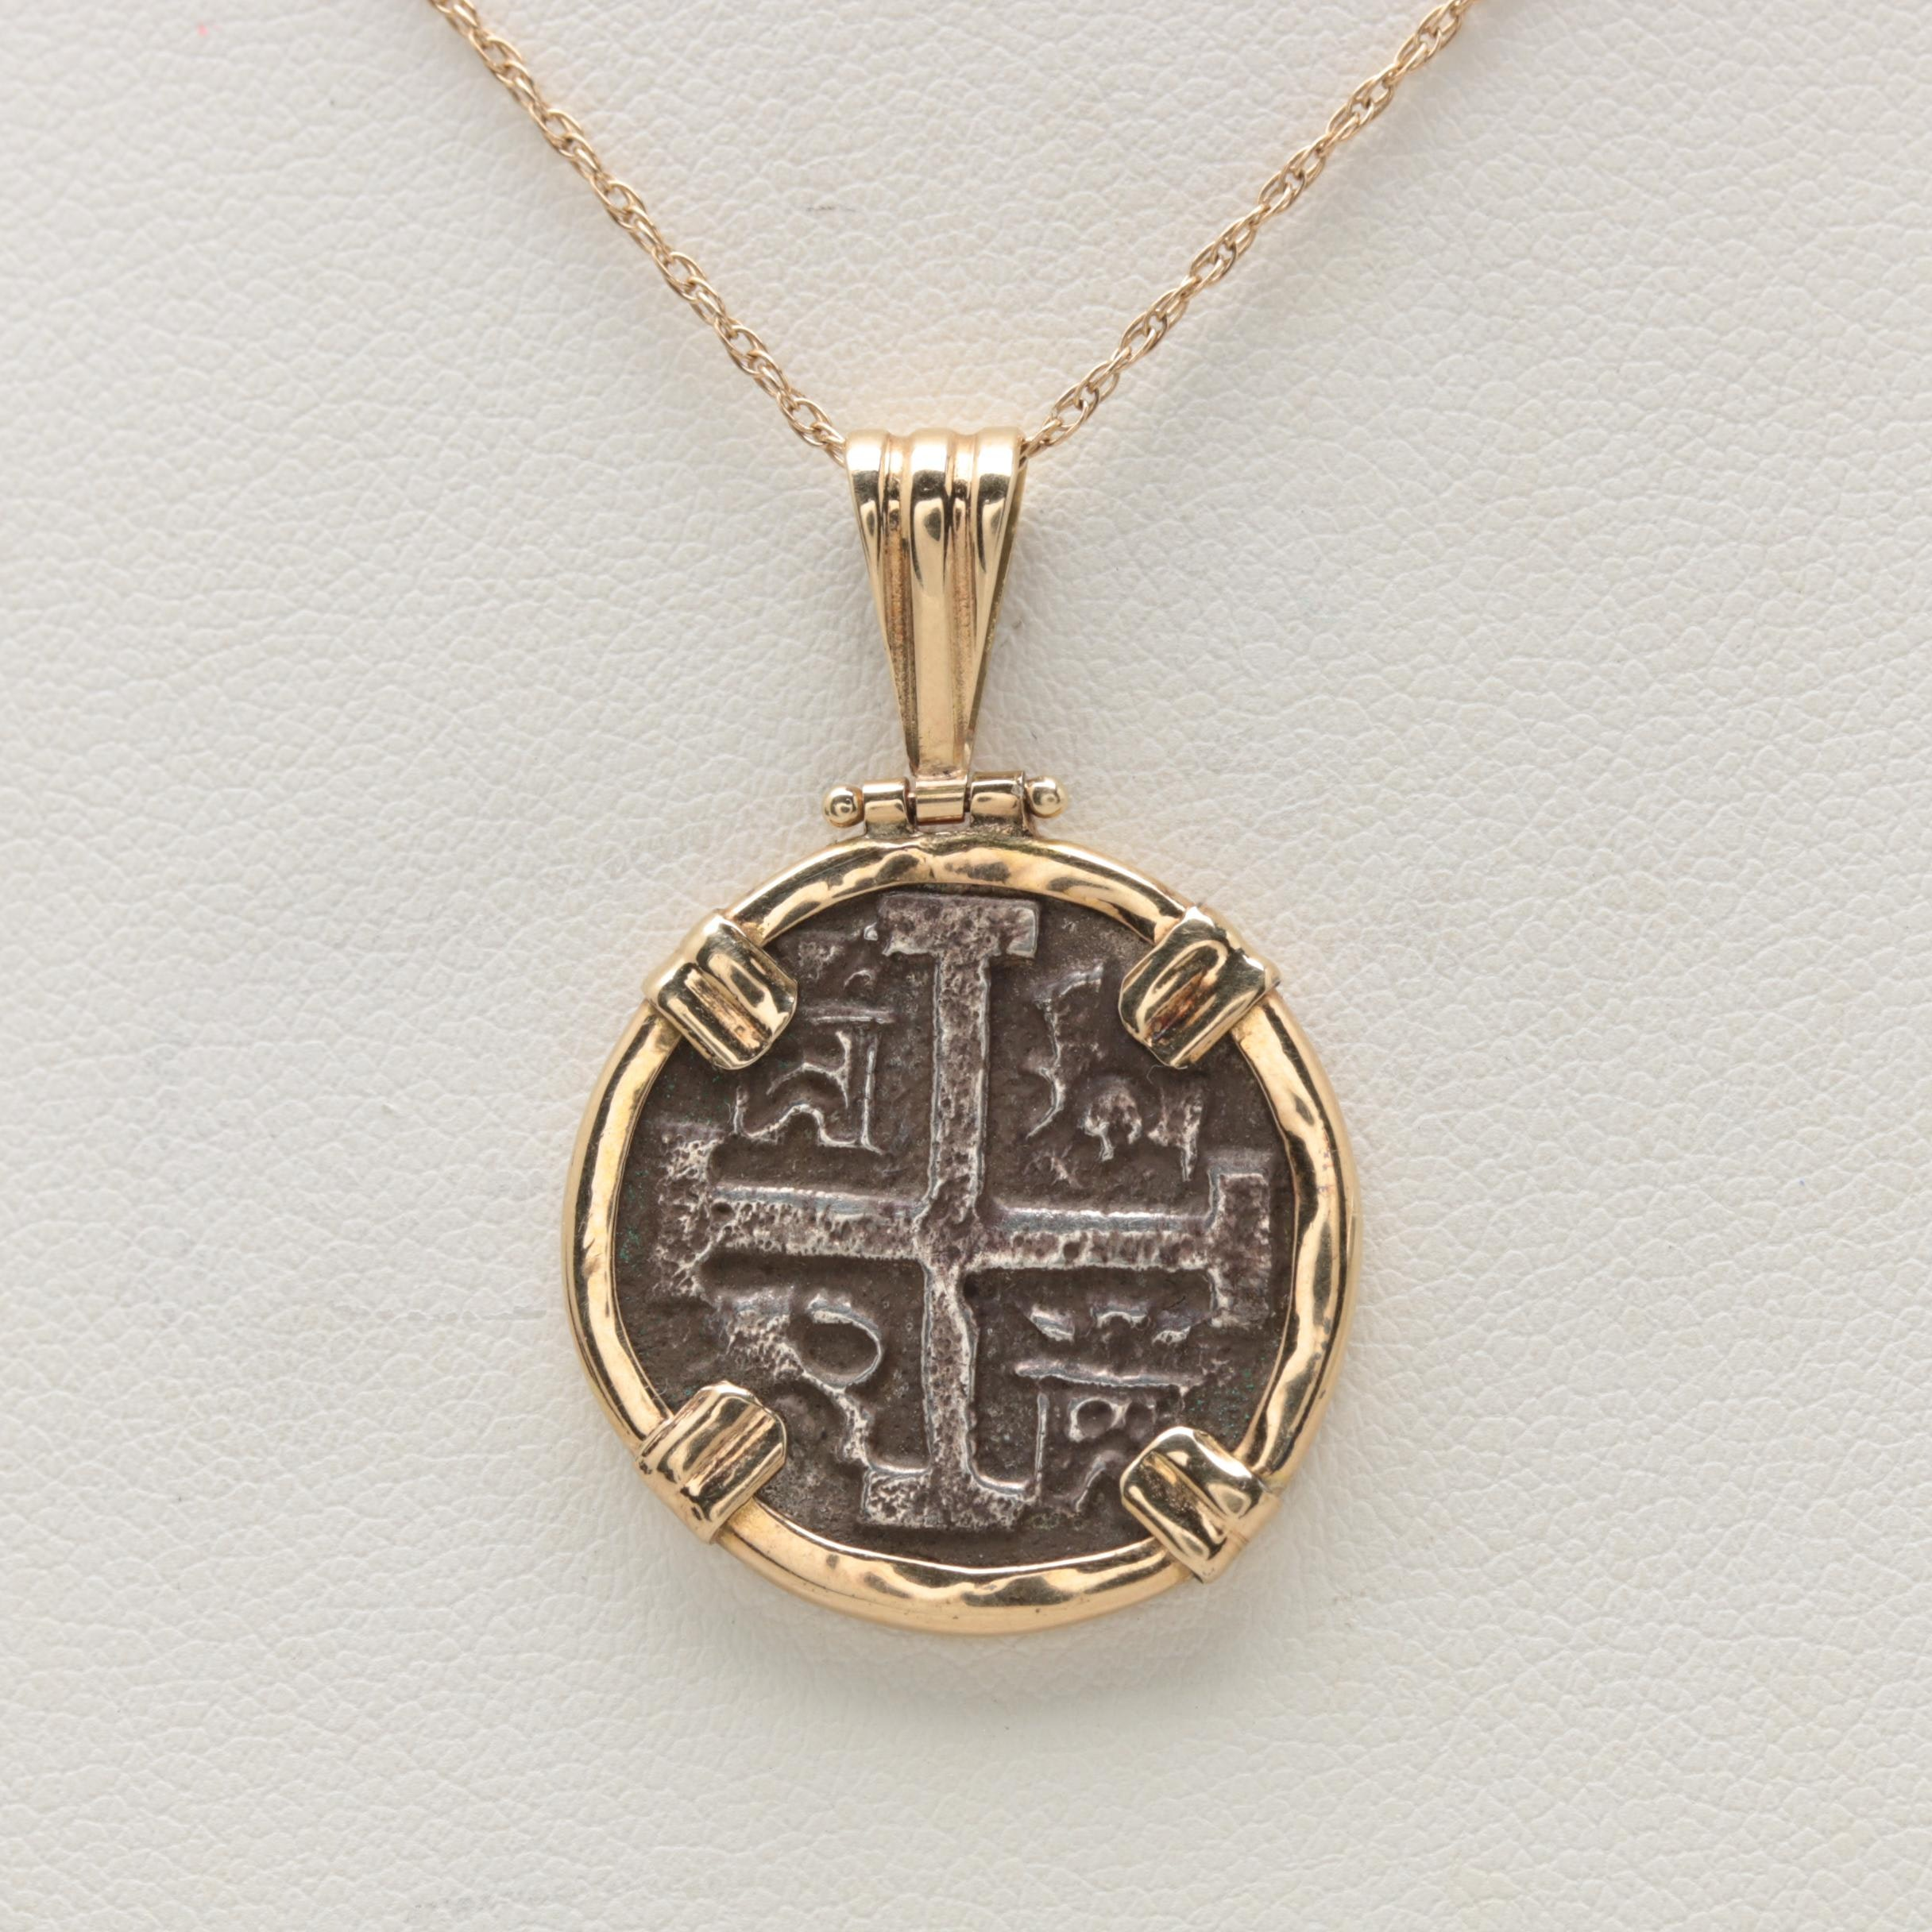 14K Yellow Gold Necklace with Hinged Coin Holder Pendant